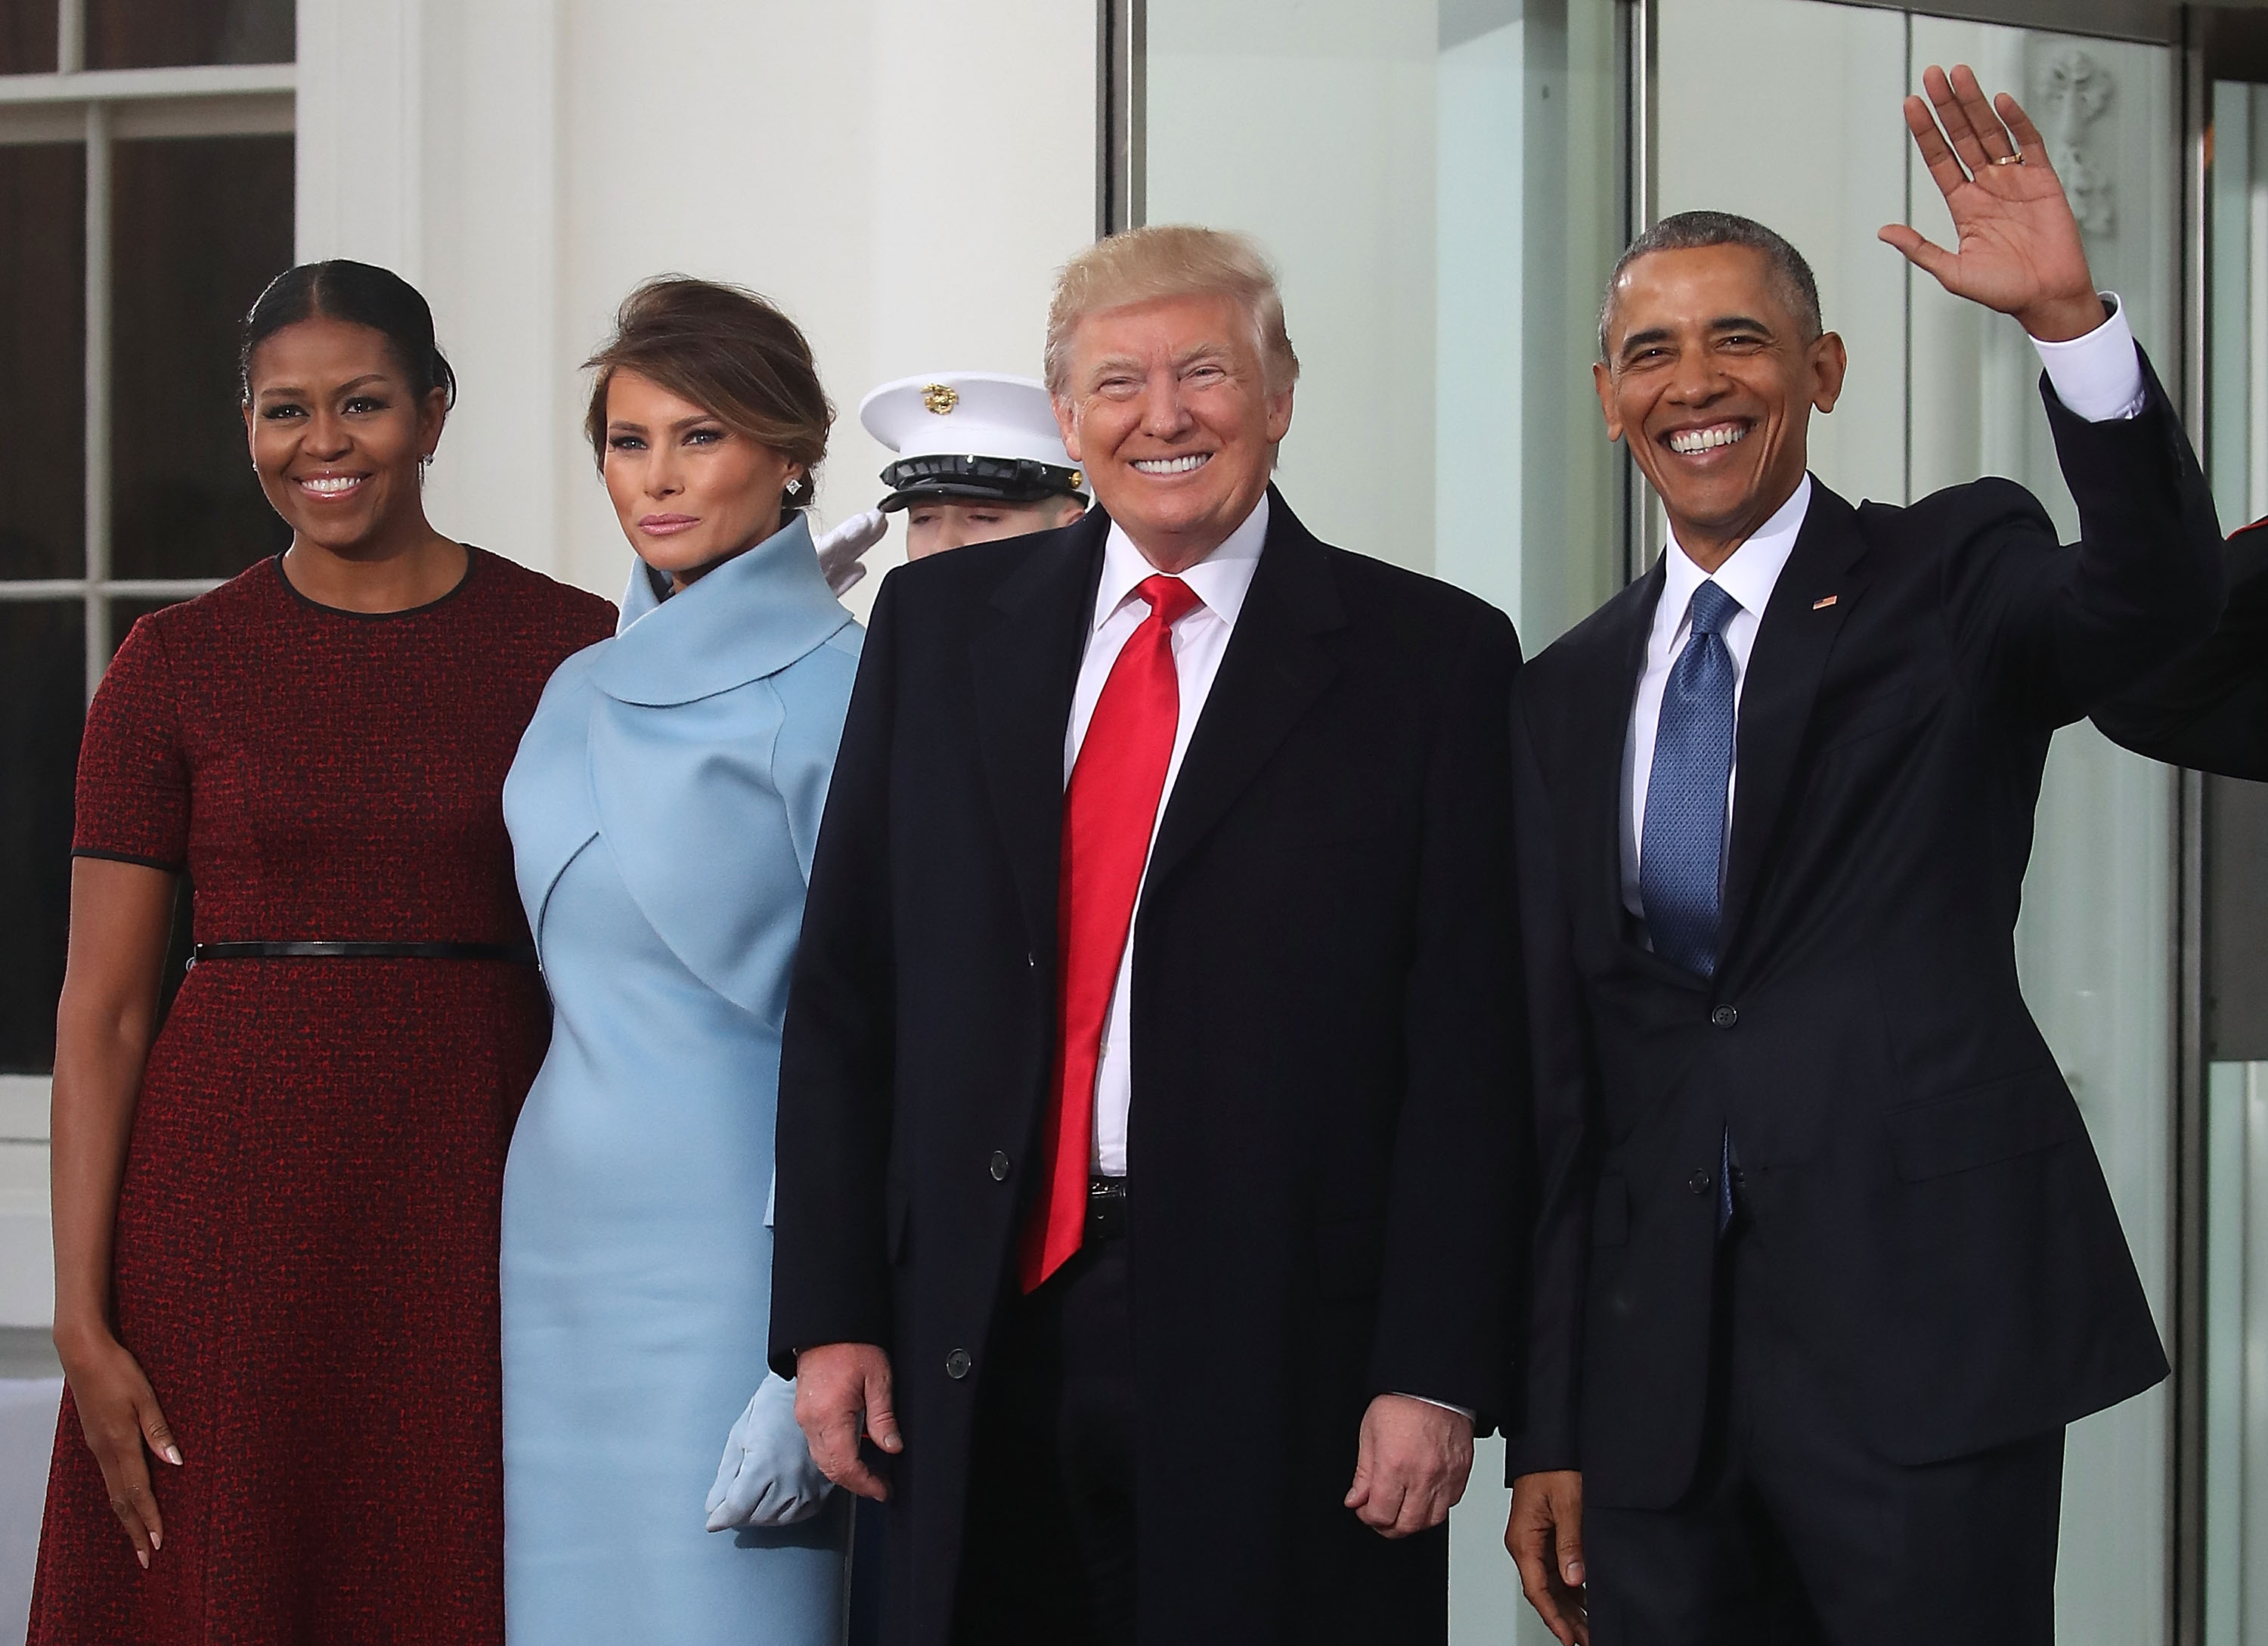 Donald And Melania Trump Arrive At White House Ahead Of Inauguration